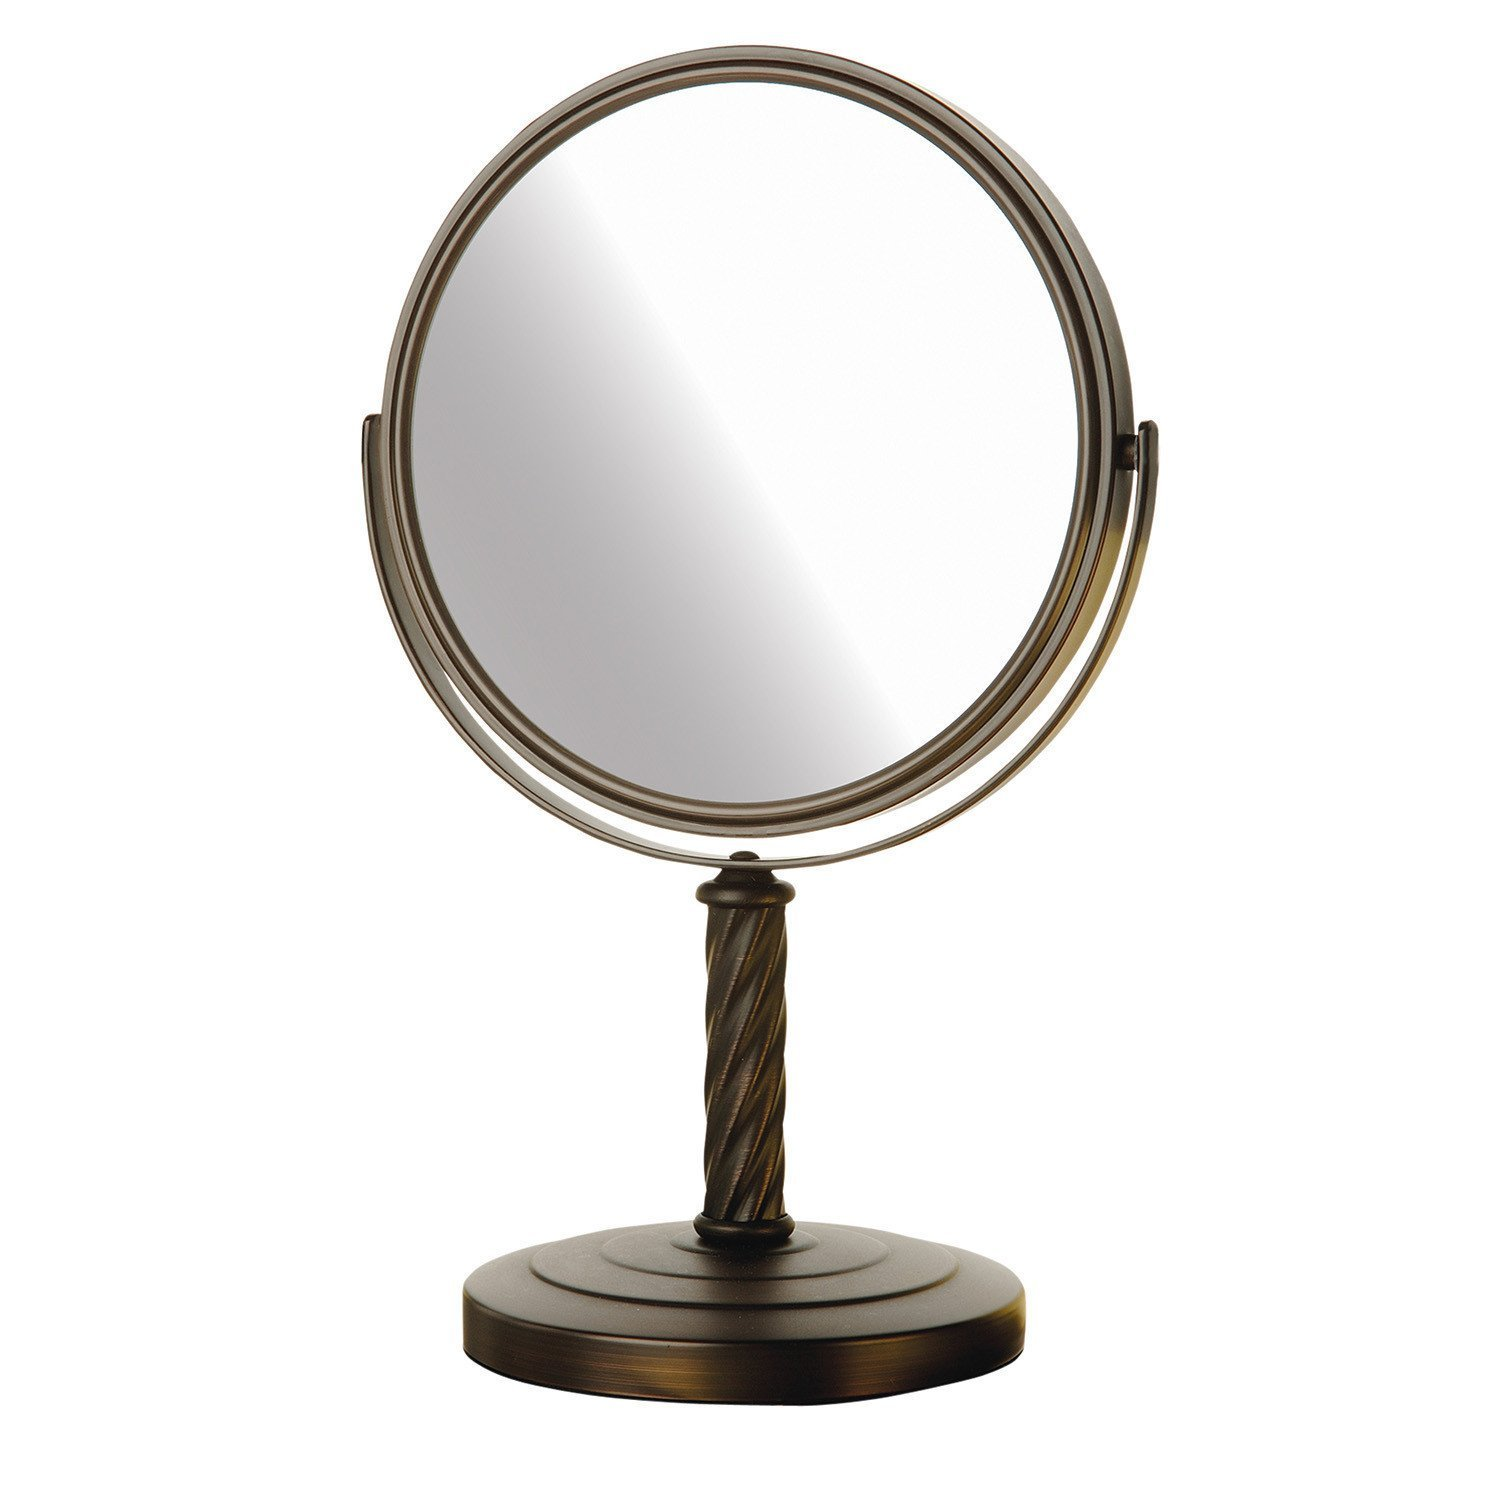 Jerdon LT5165BZ 8-Inch Mirror with 5x Magnification, Bronze Finish